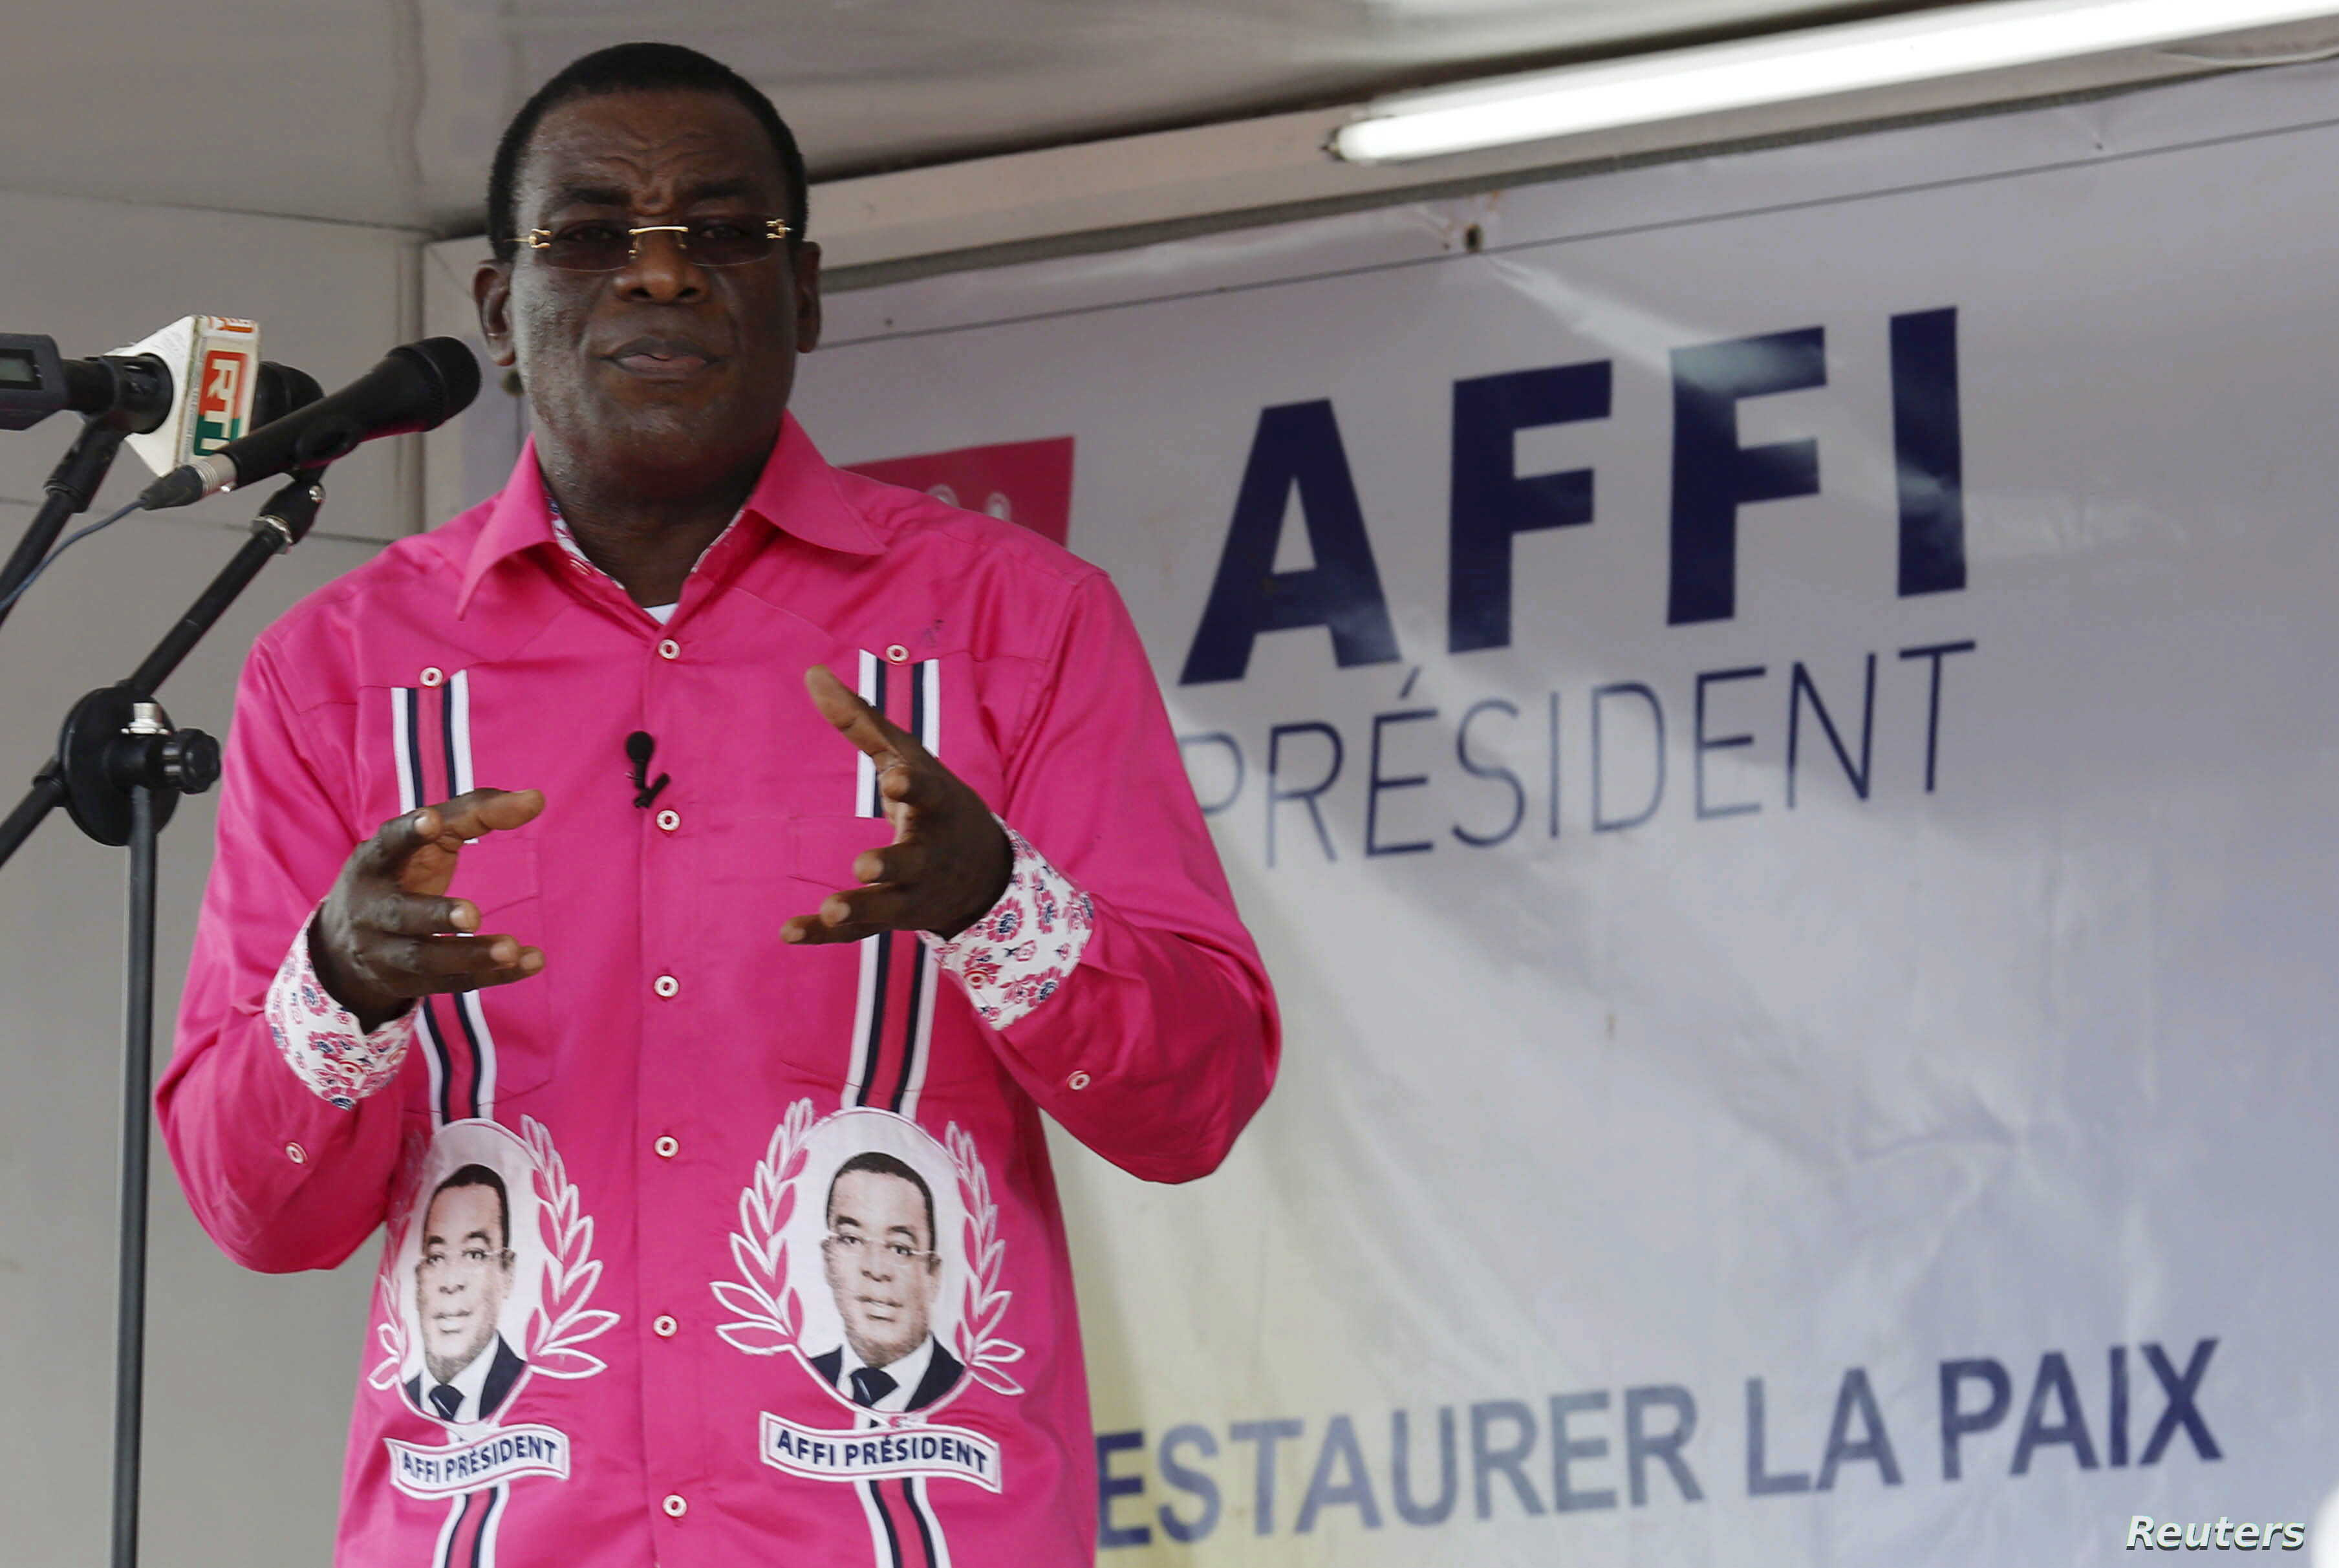 Pascal Affi N'Guessan, leader of Ivorian Popular Front (FPI), speaks during a campaign rally in Gagnoa, Oct. 10, 2015.